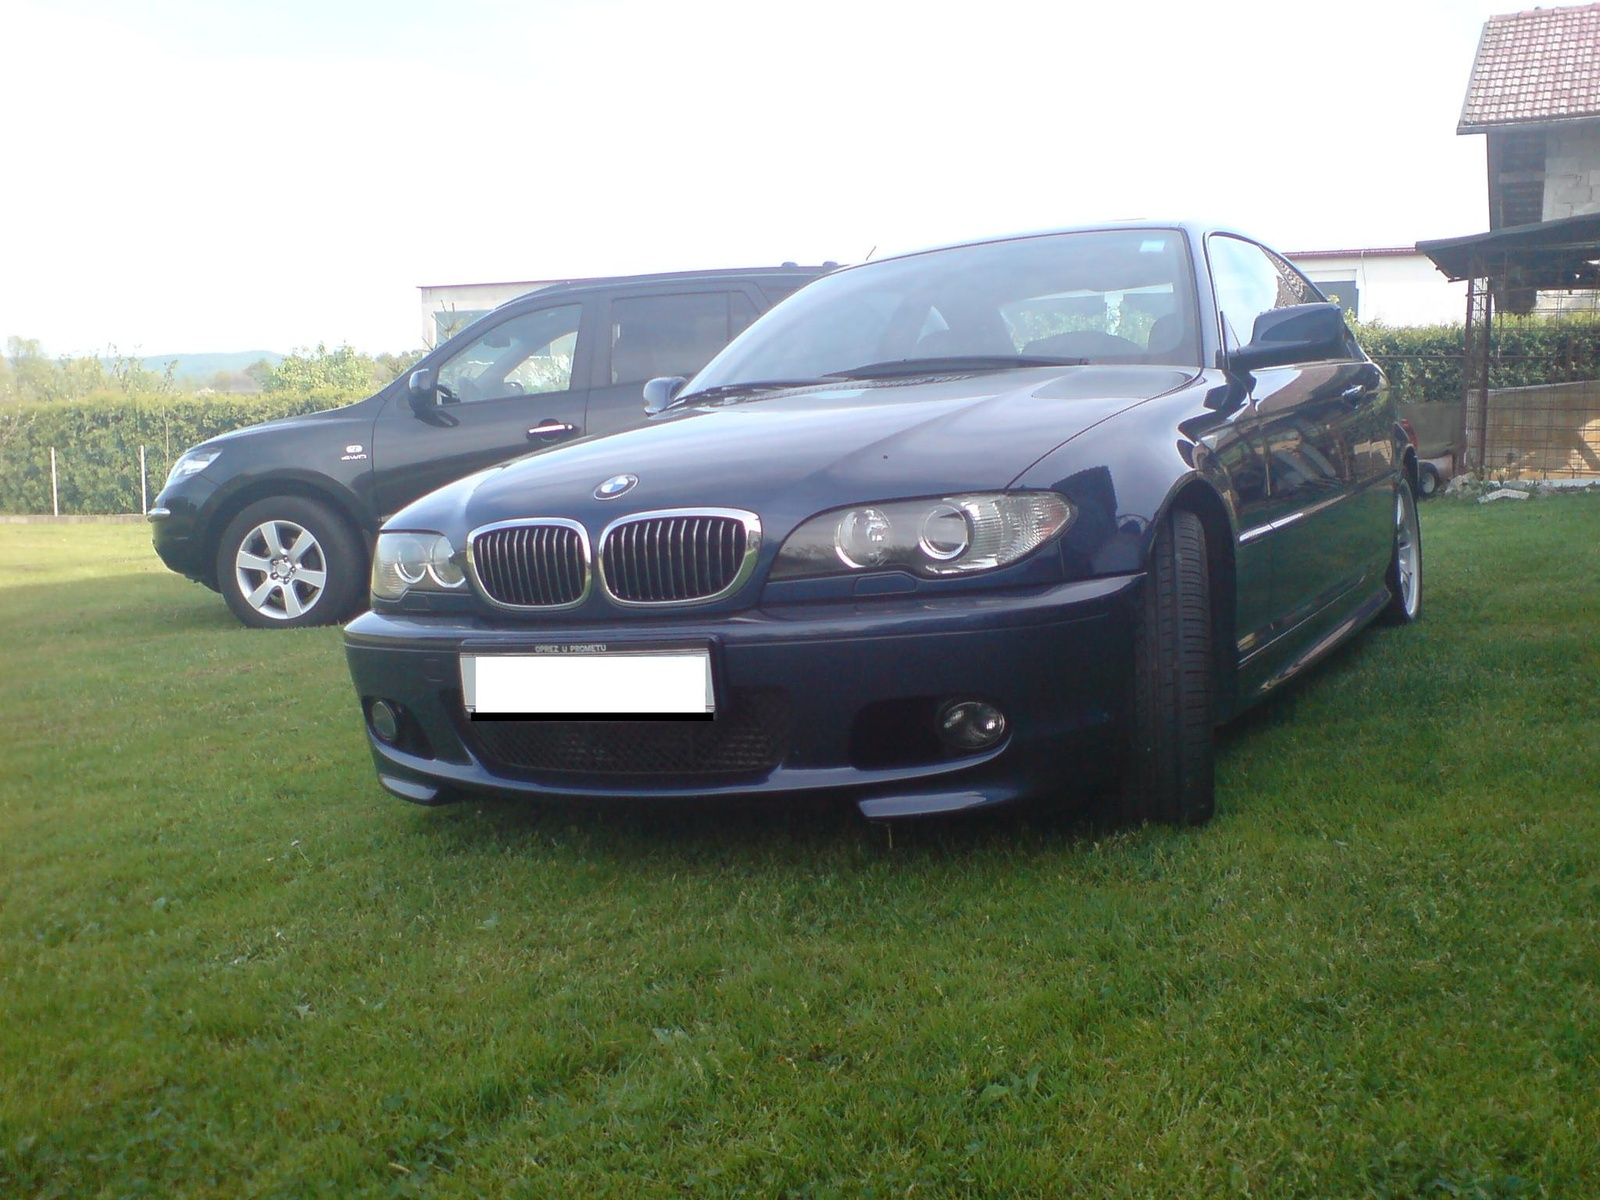 BMW 3 series 330Ci 2004 photo - 11